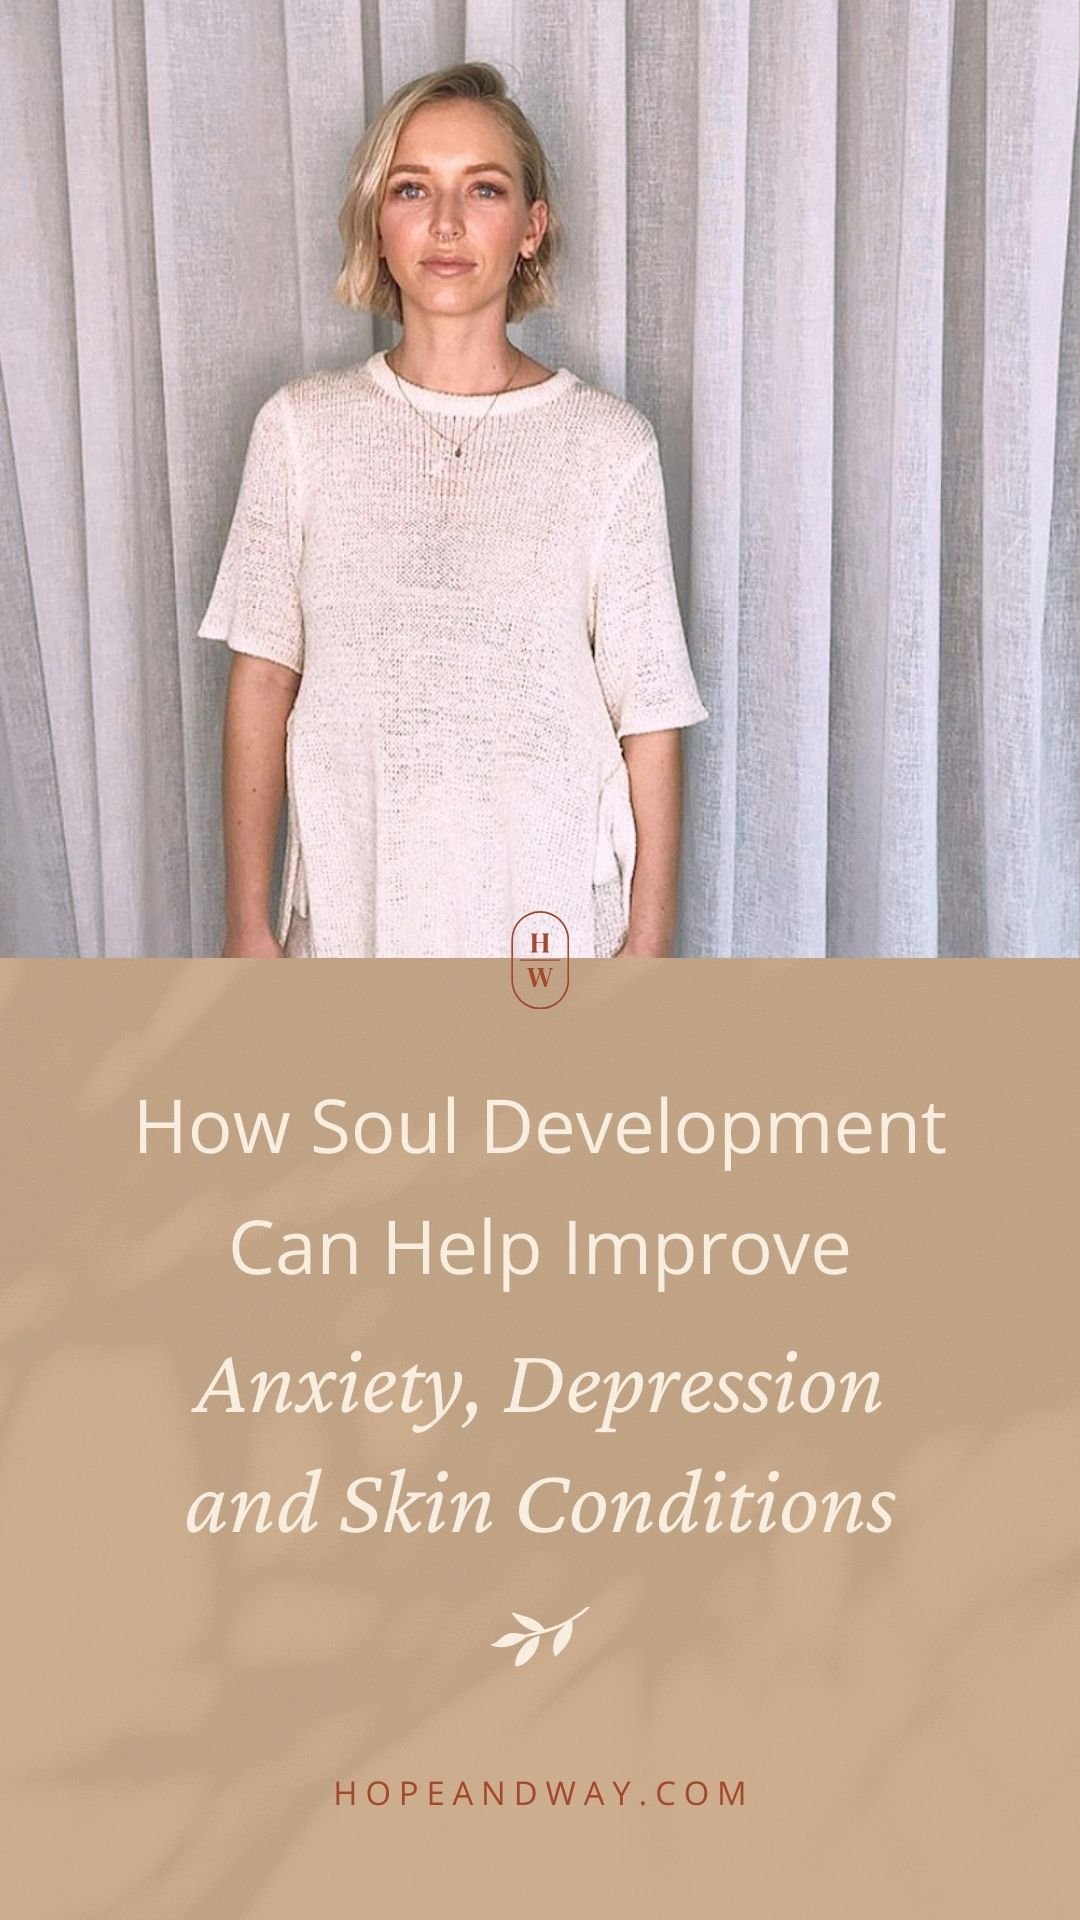 How Soul Development Can Help Improve Anxiety, Depression and Skin Conditions - Interview with Missy Mitchell